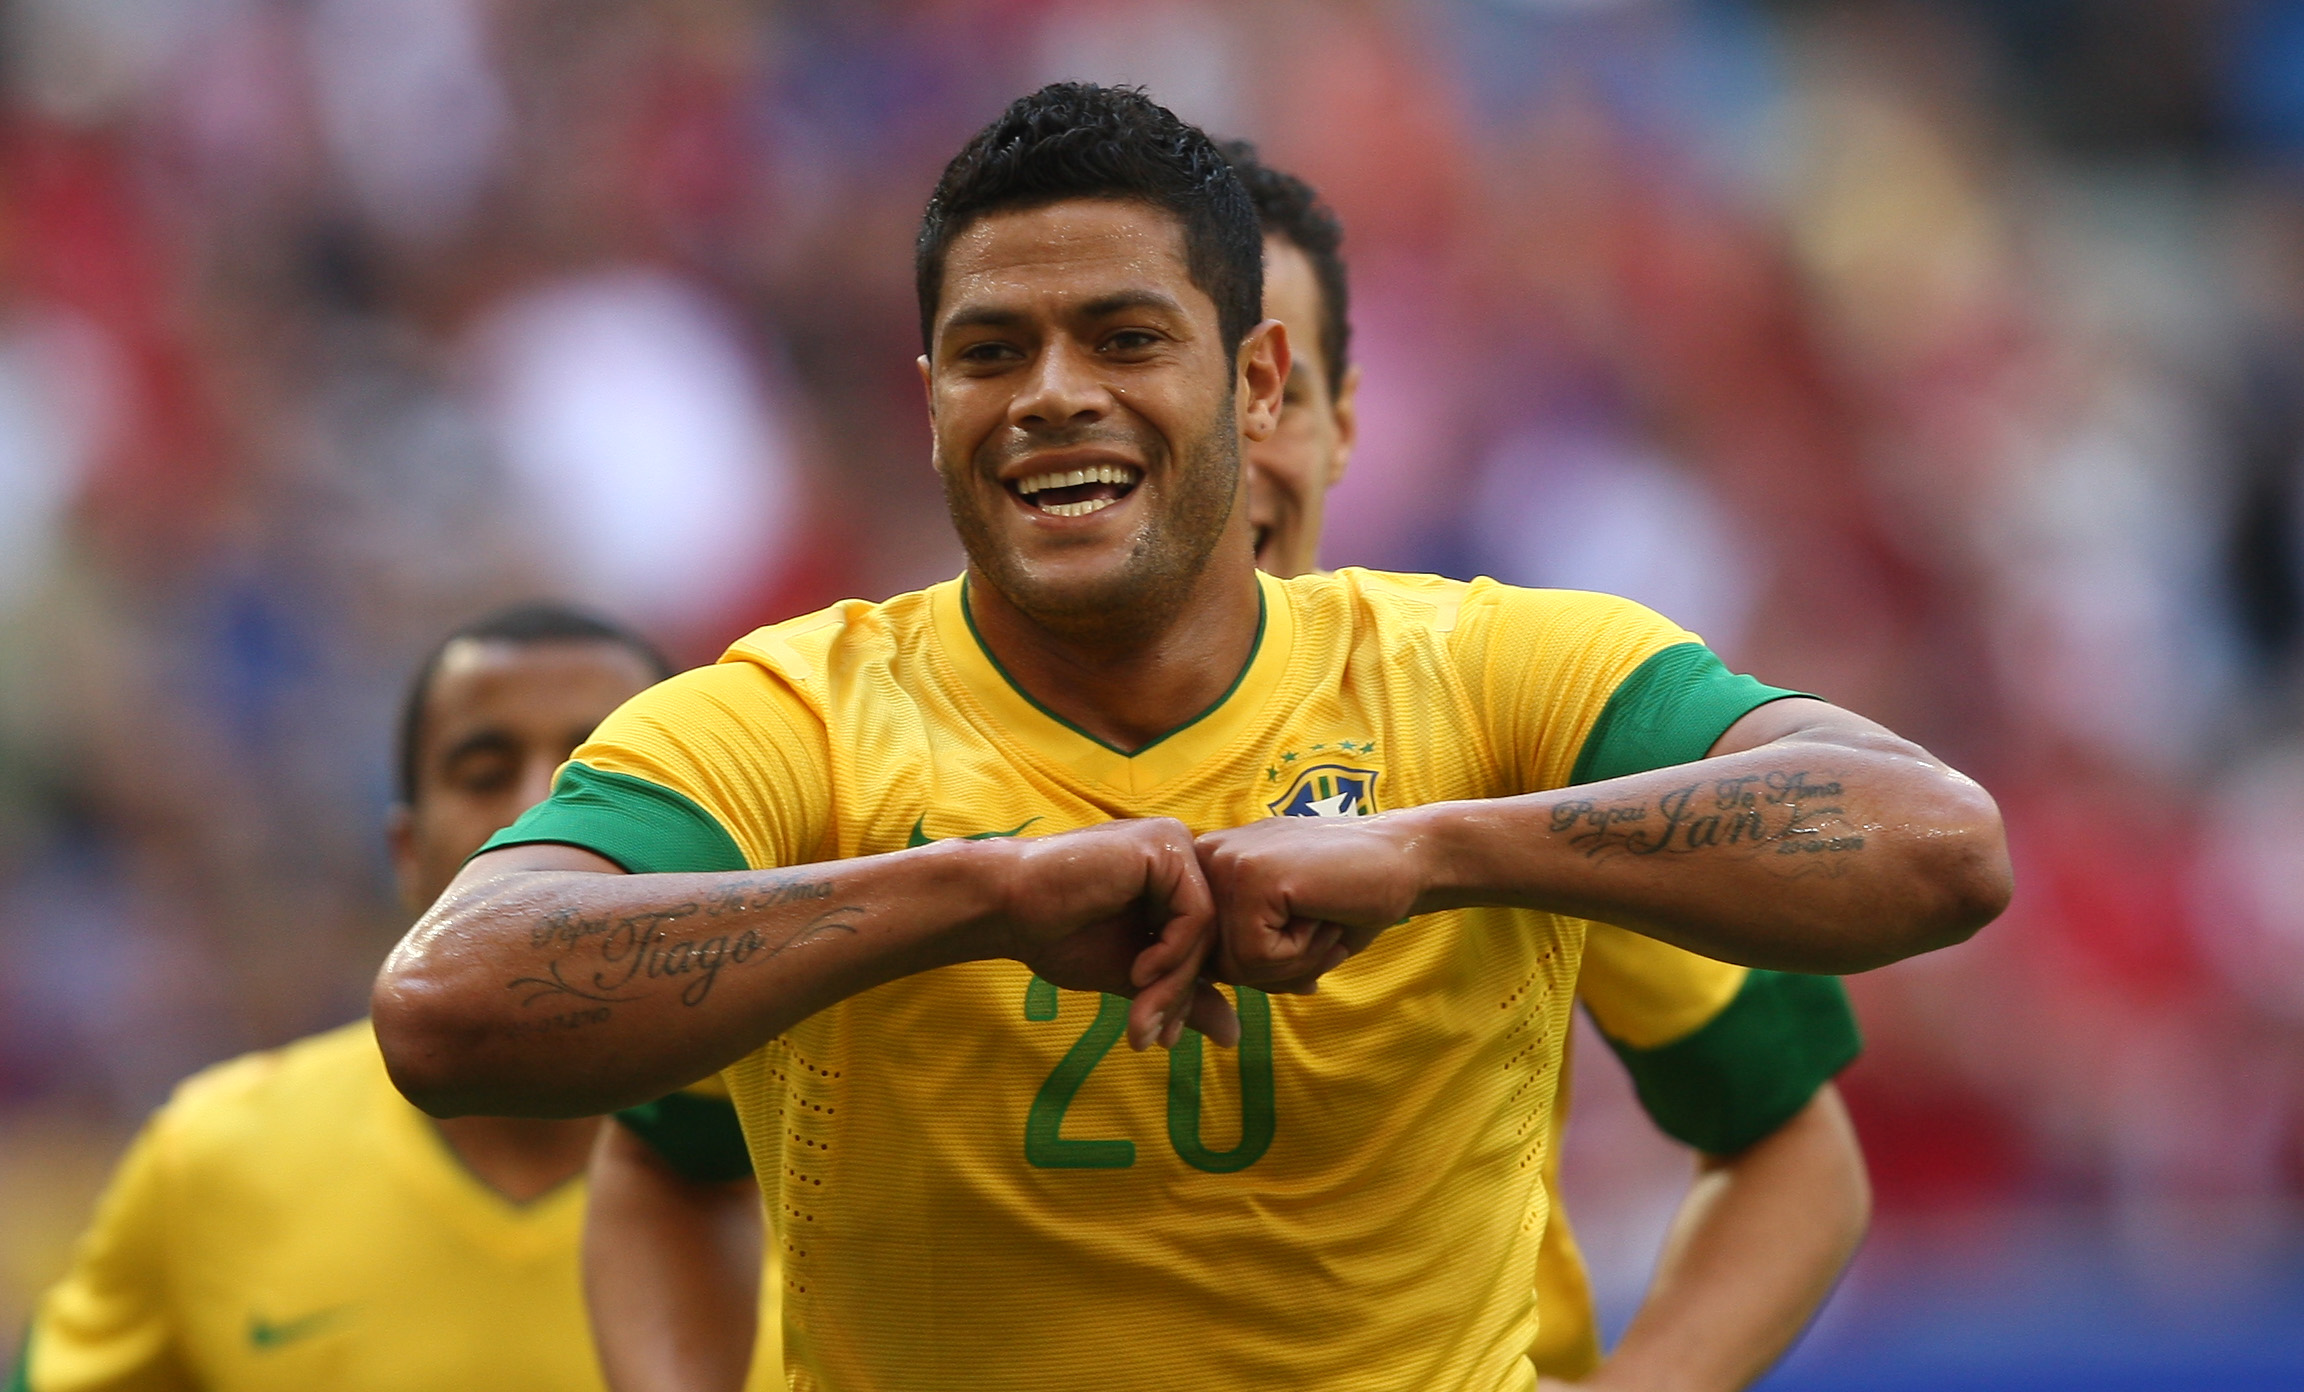 RS5005 JOGO01 RUMOUR: Arsenal have a £26.5m bid for Hulk accepted by Zenit, medical before the World Cup [NBC Sports]